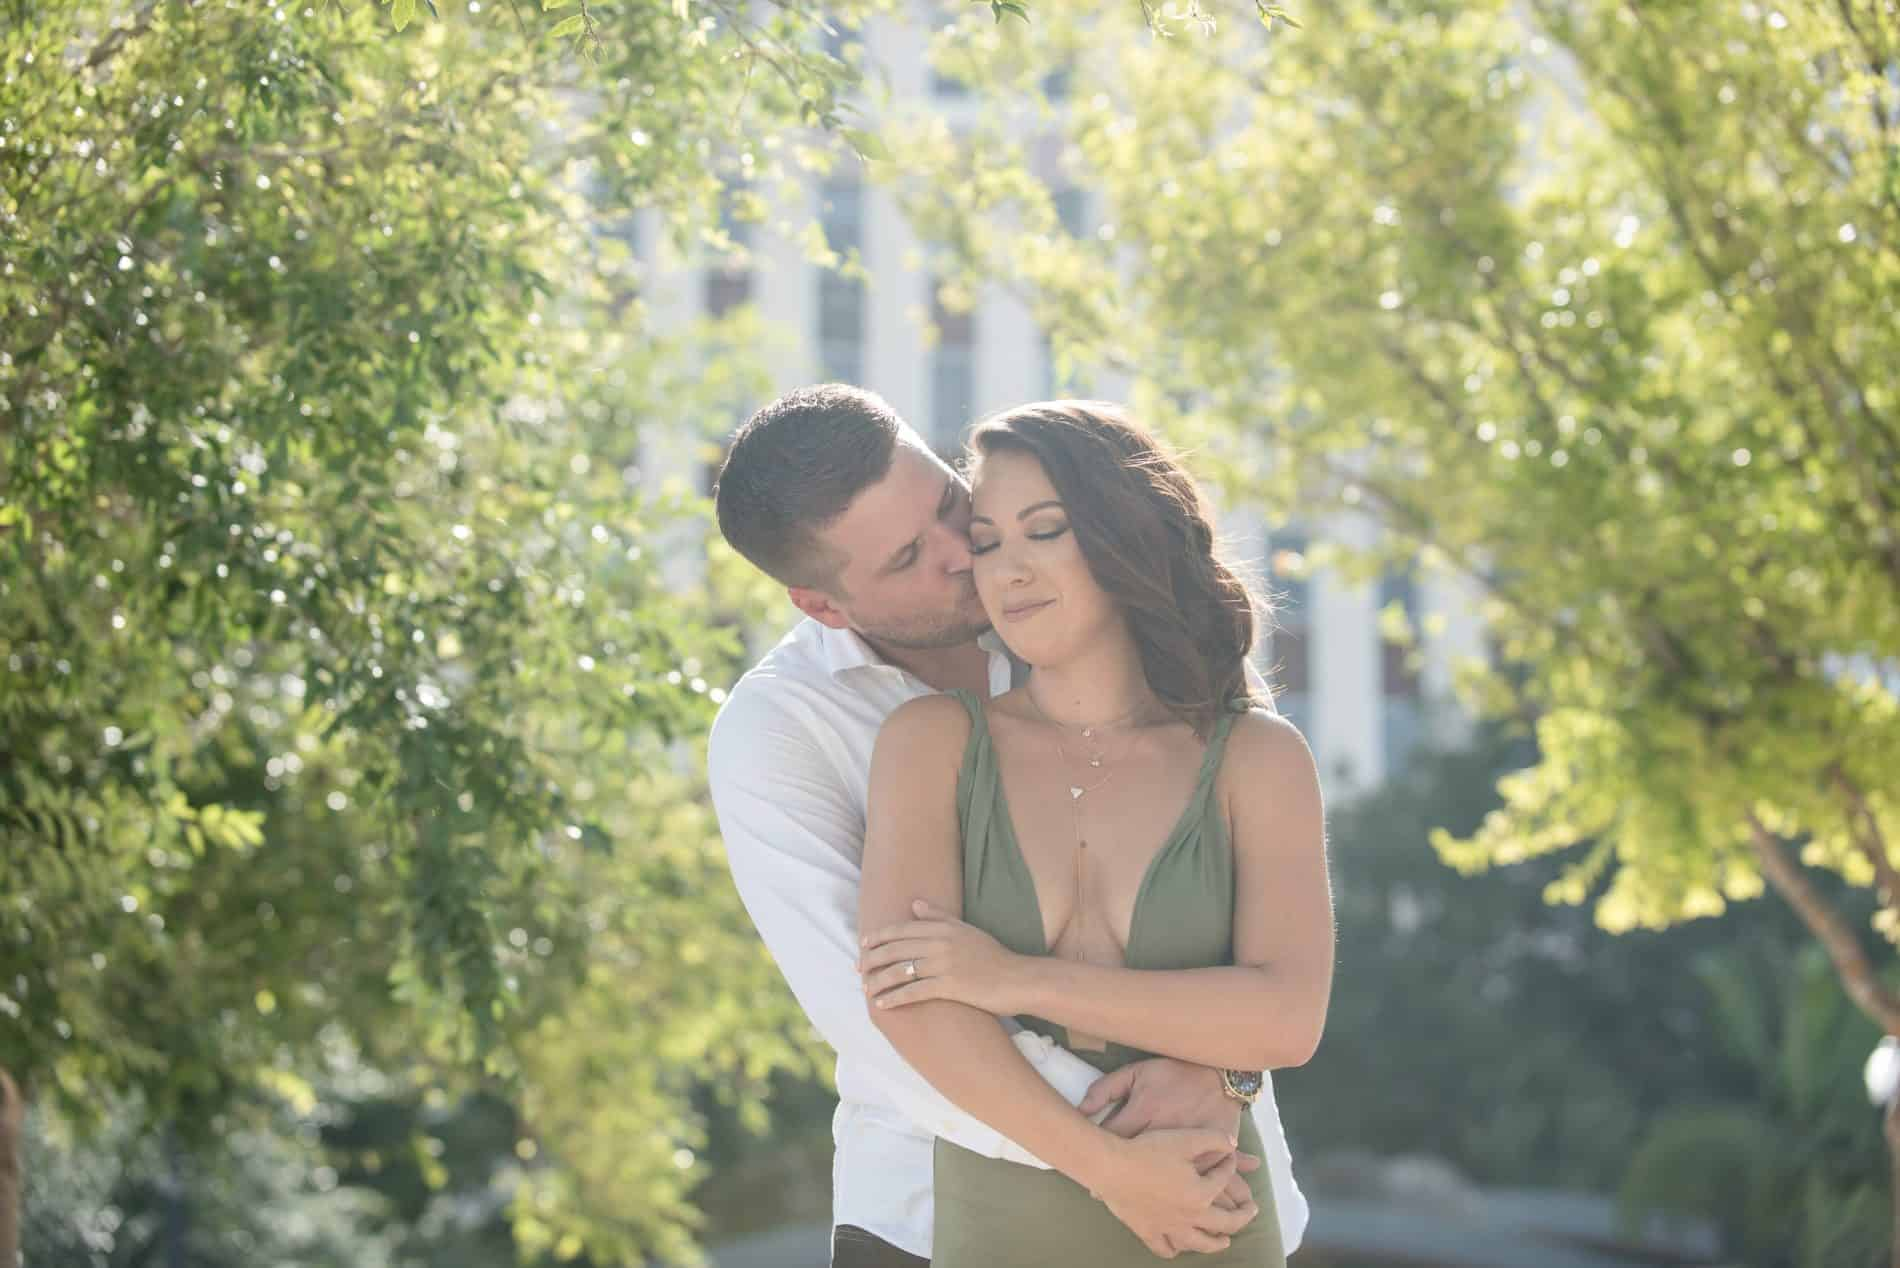 They share an intimate moment among the trees of Dr Phillips Center